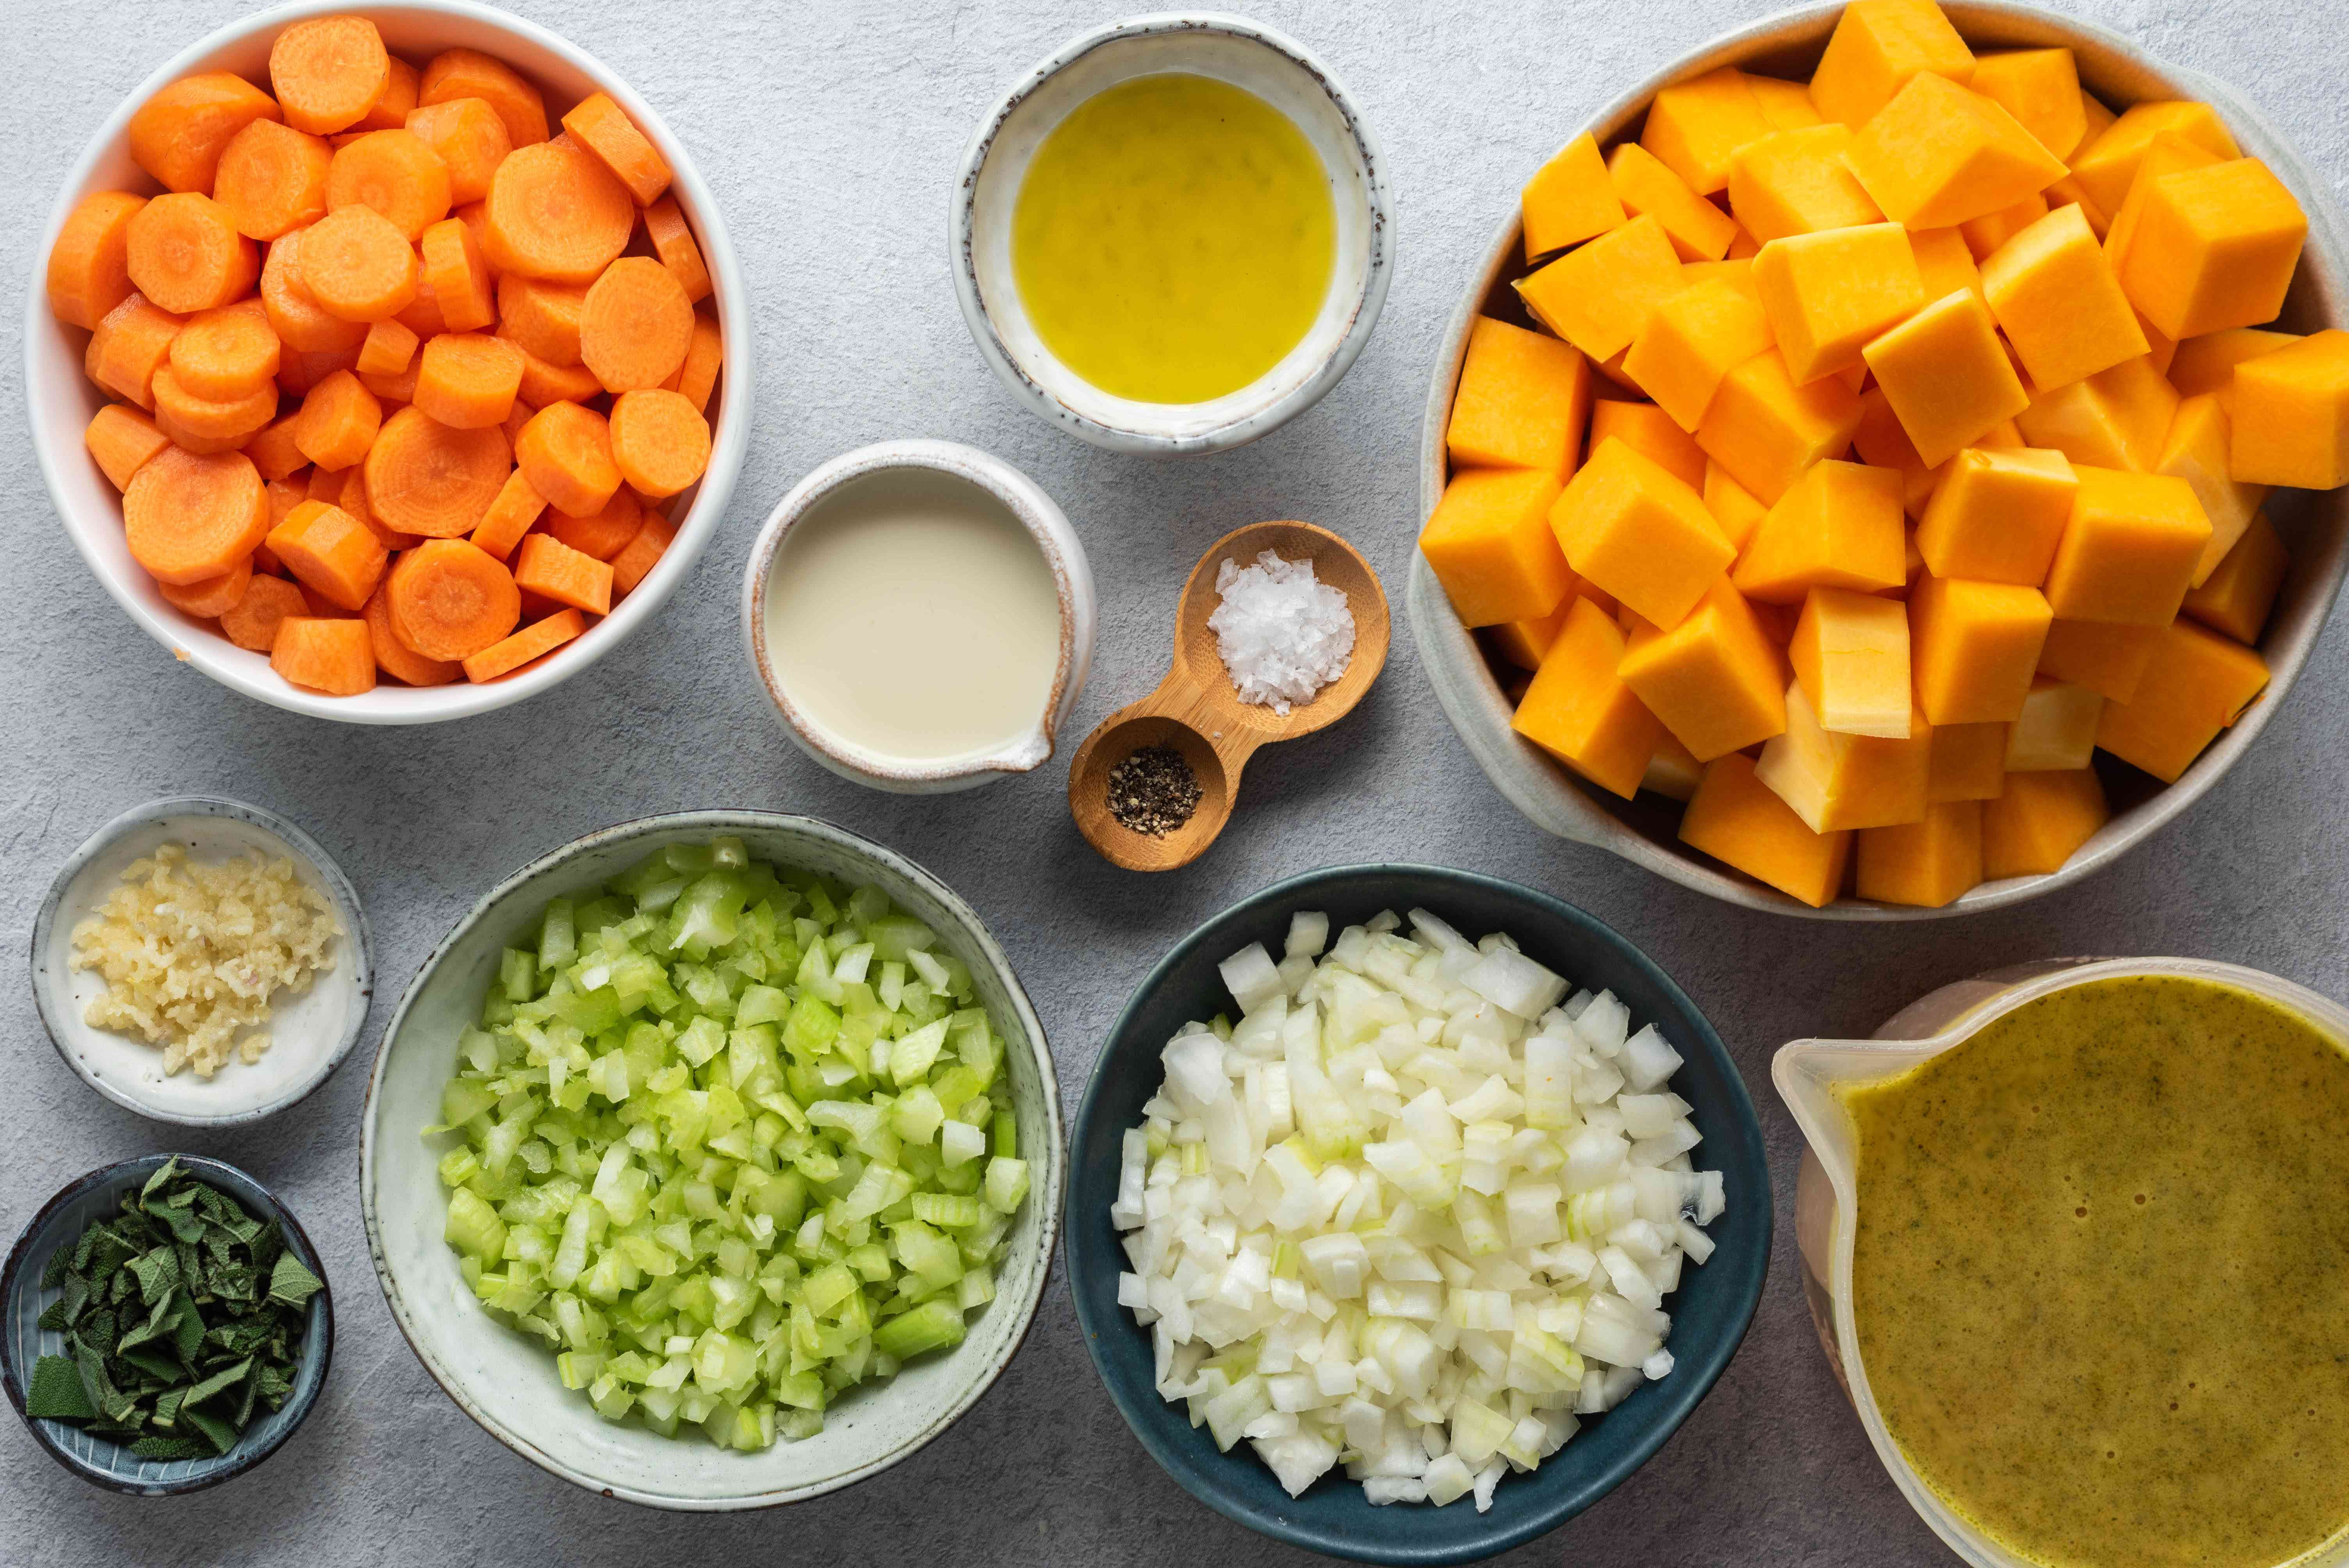 Ingredients for butternut squash and carrot soup